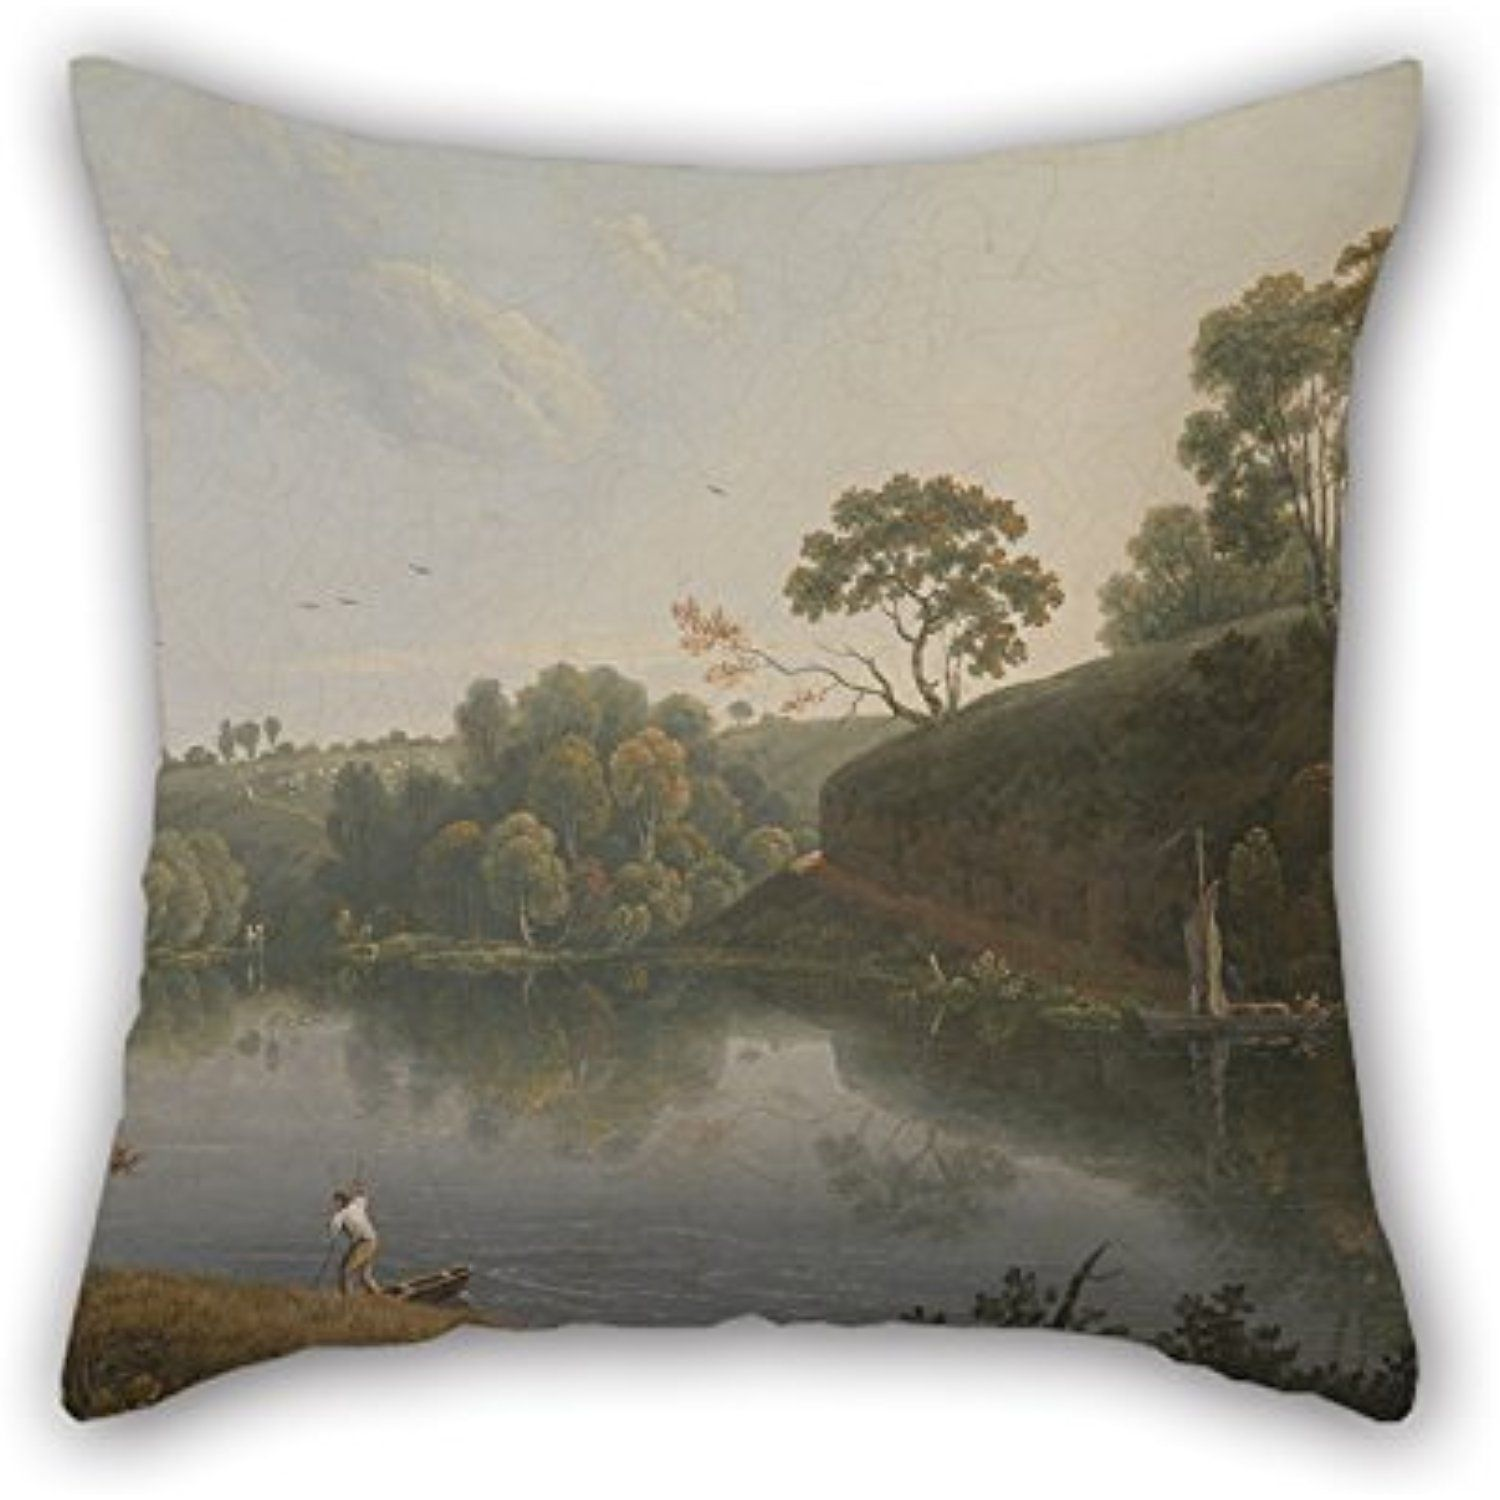 Throw cushion covers of oil painting thomas wright landscape with